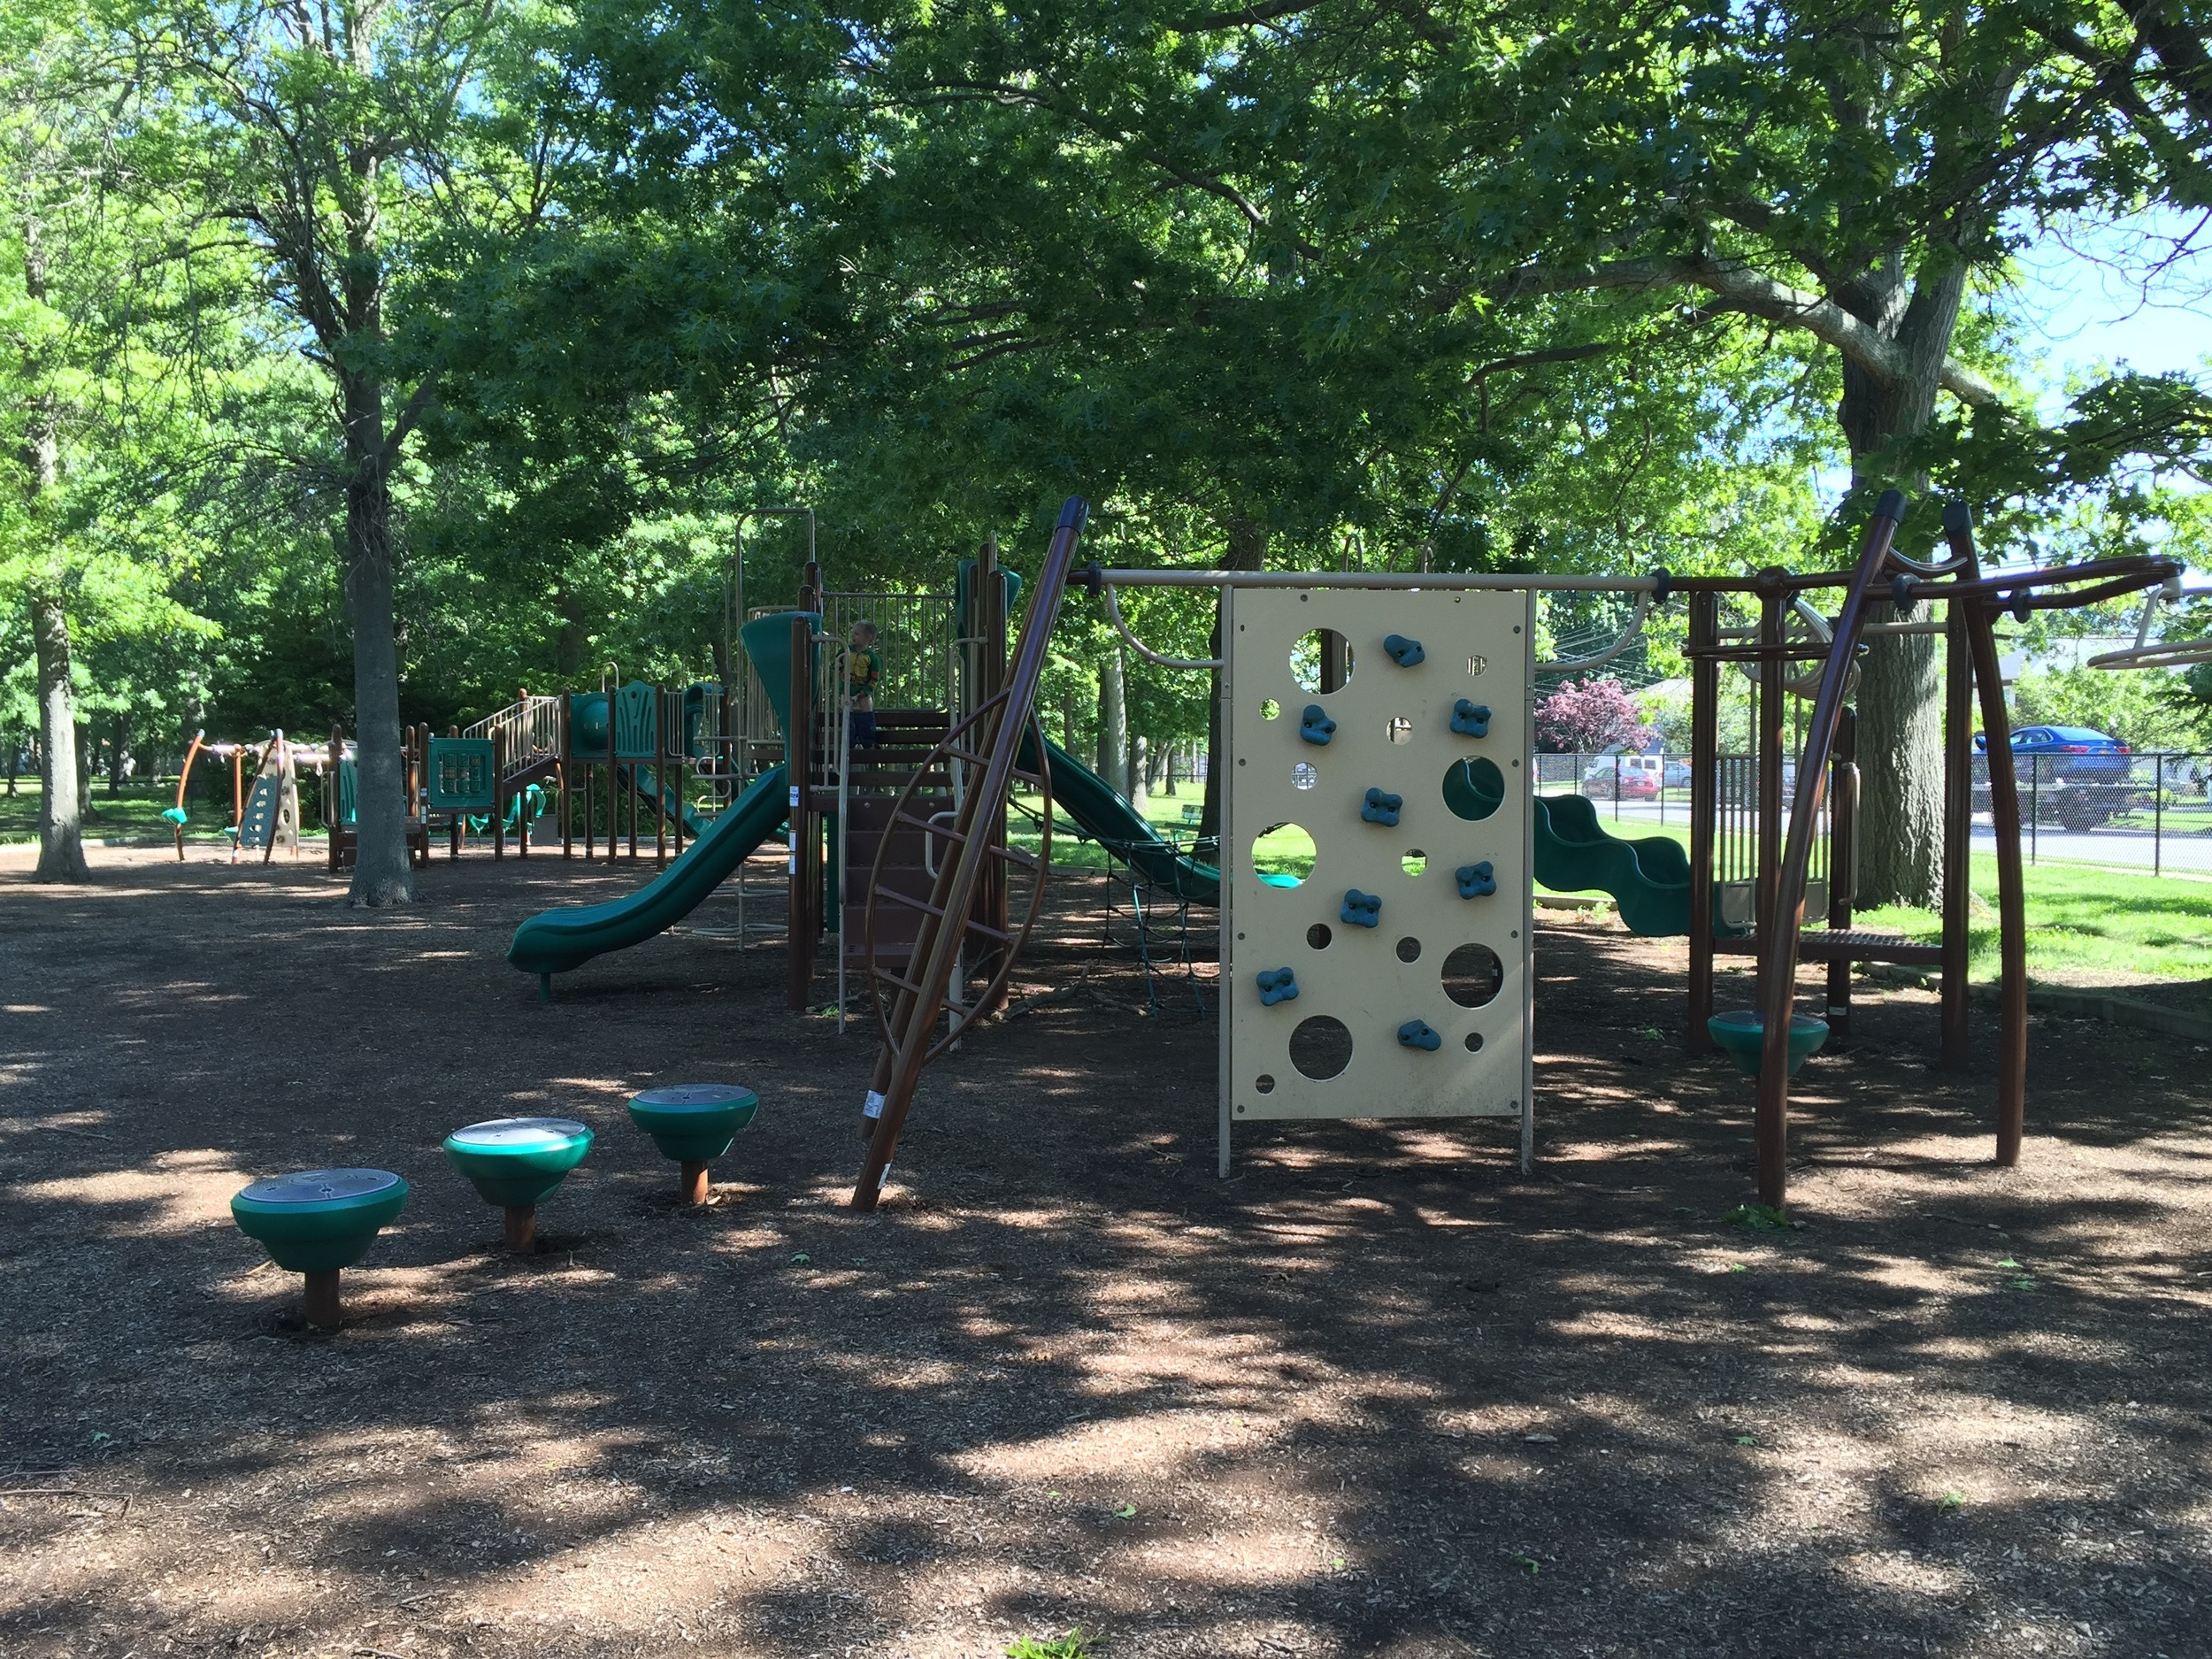 Back playground at Marjorie Post